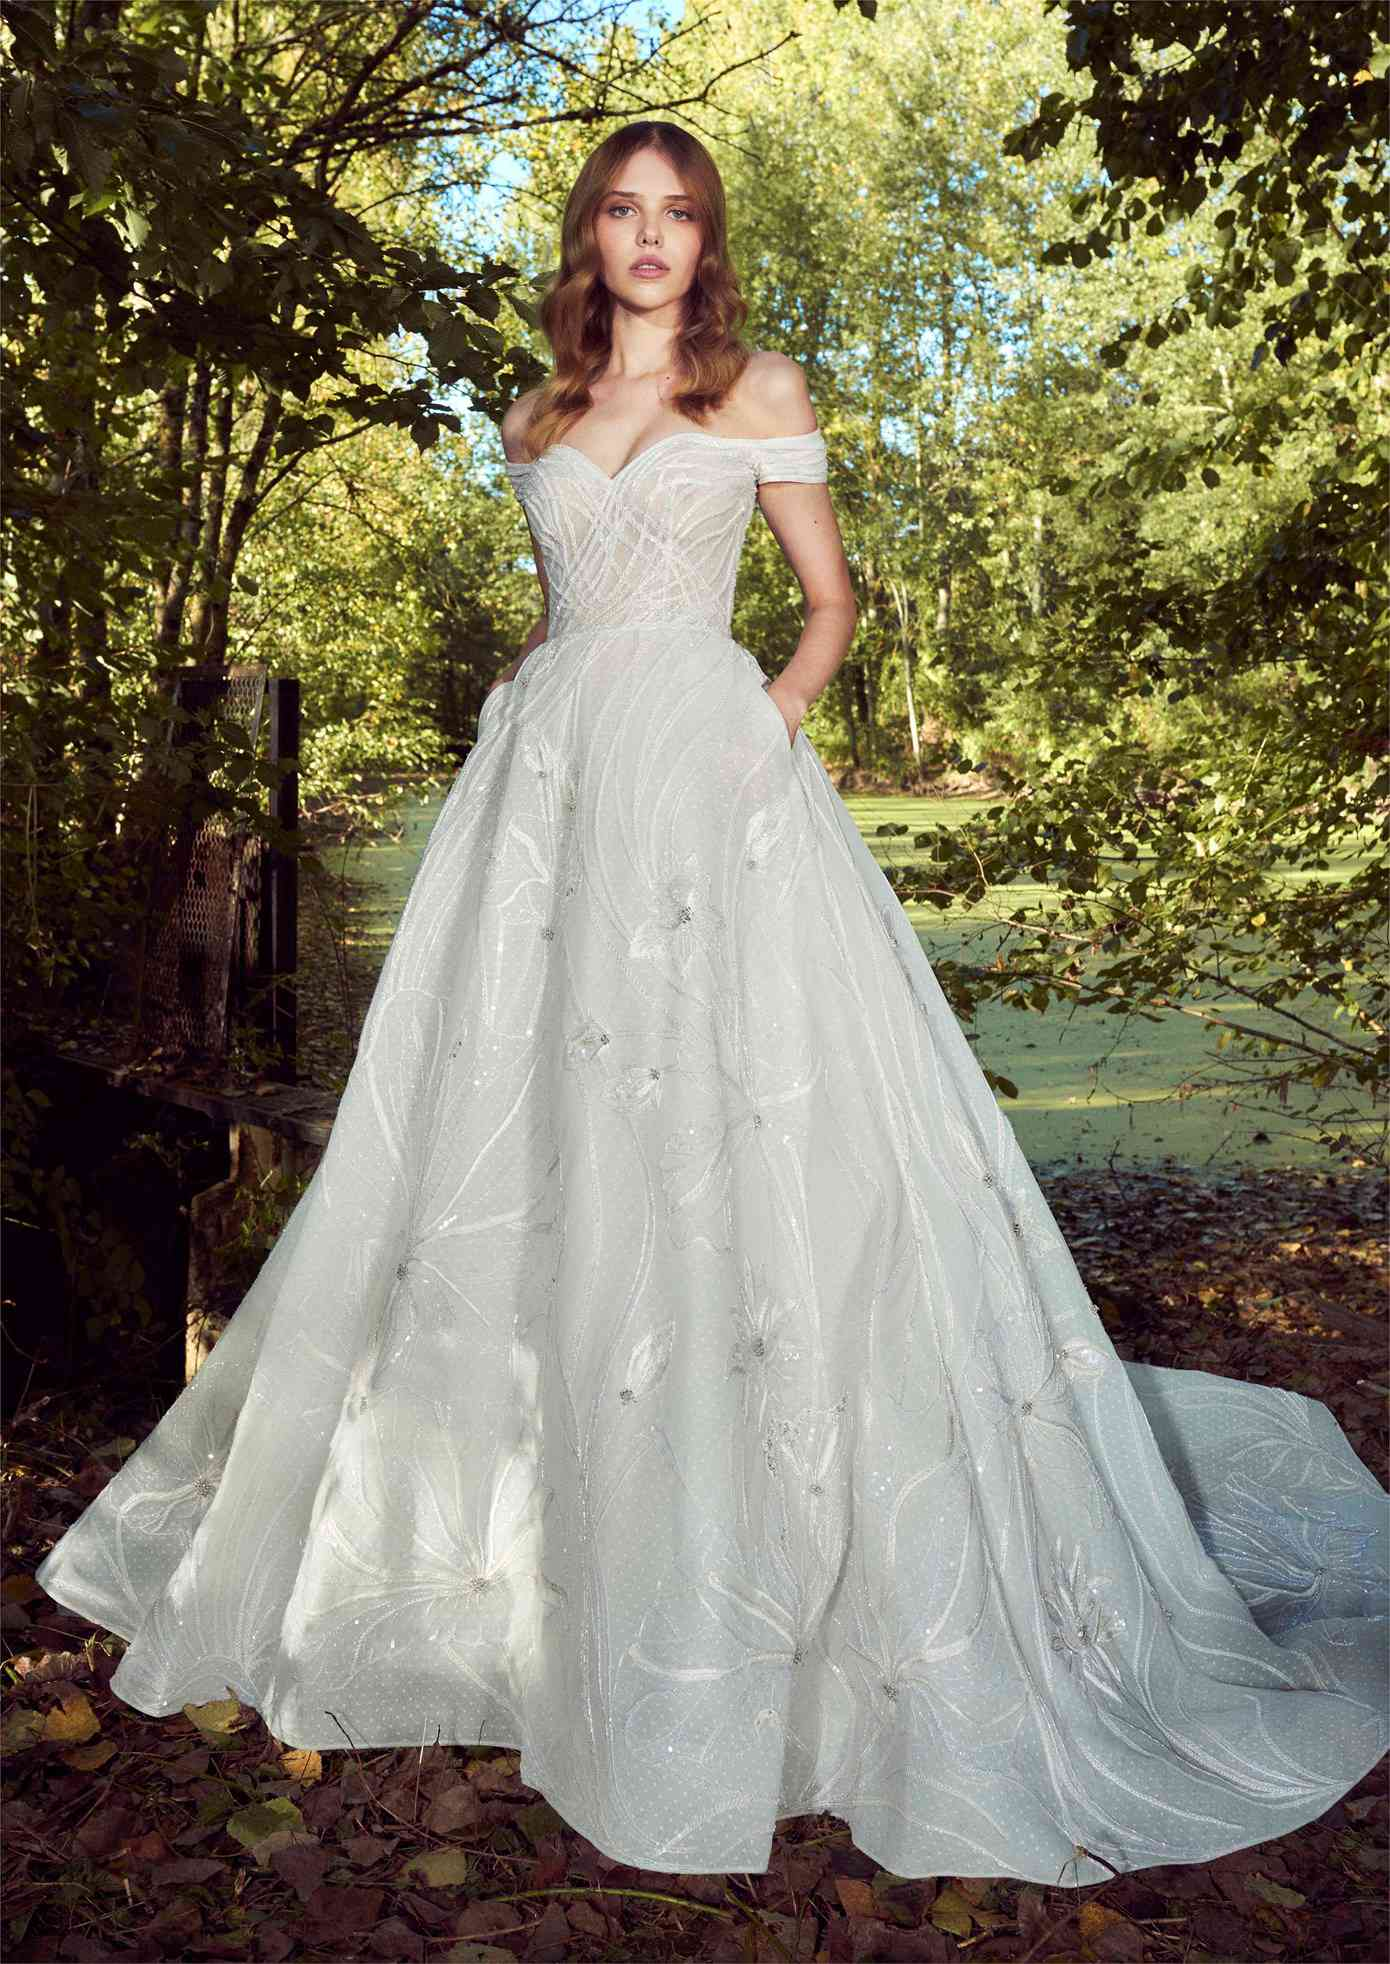 Model in off-the-shoulder sweetheart dotted tulle ballgown with silver beaded embroidery and skirt pockets